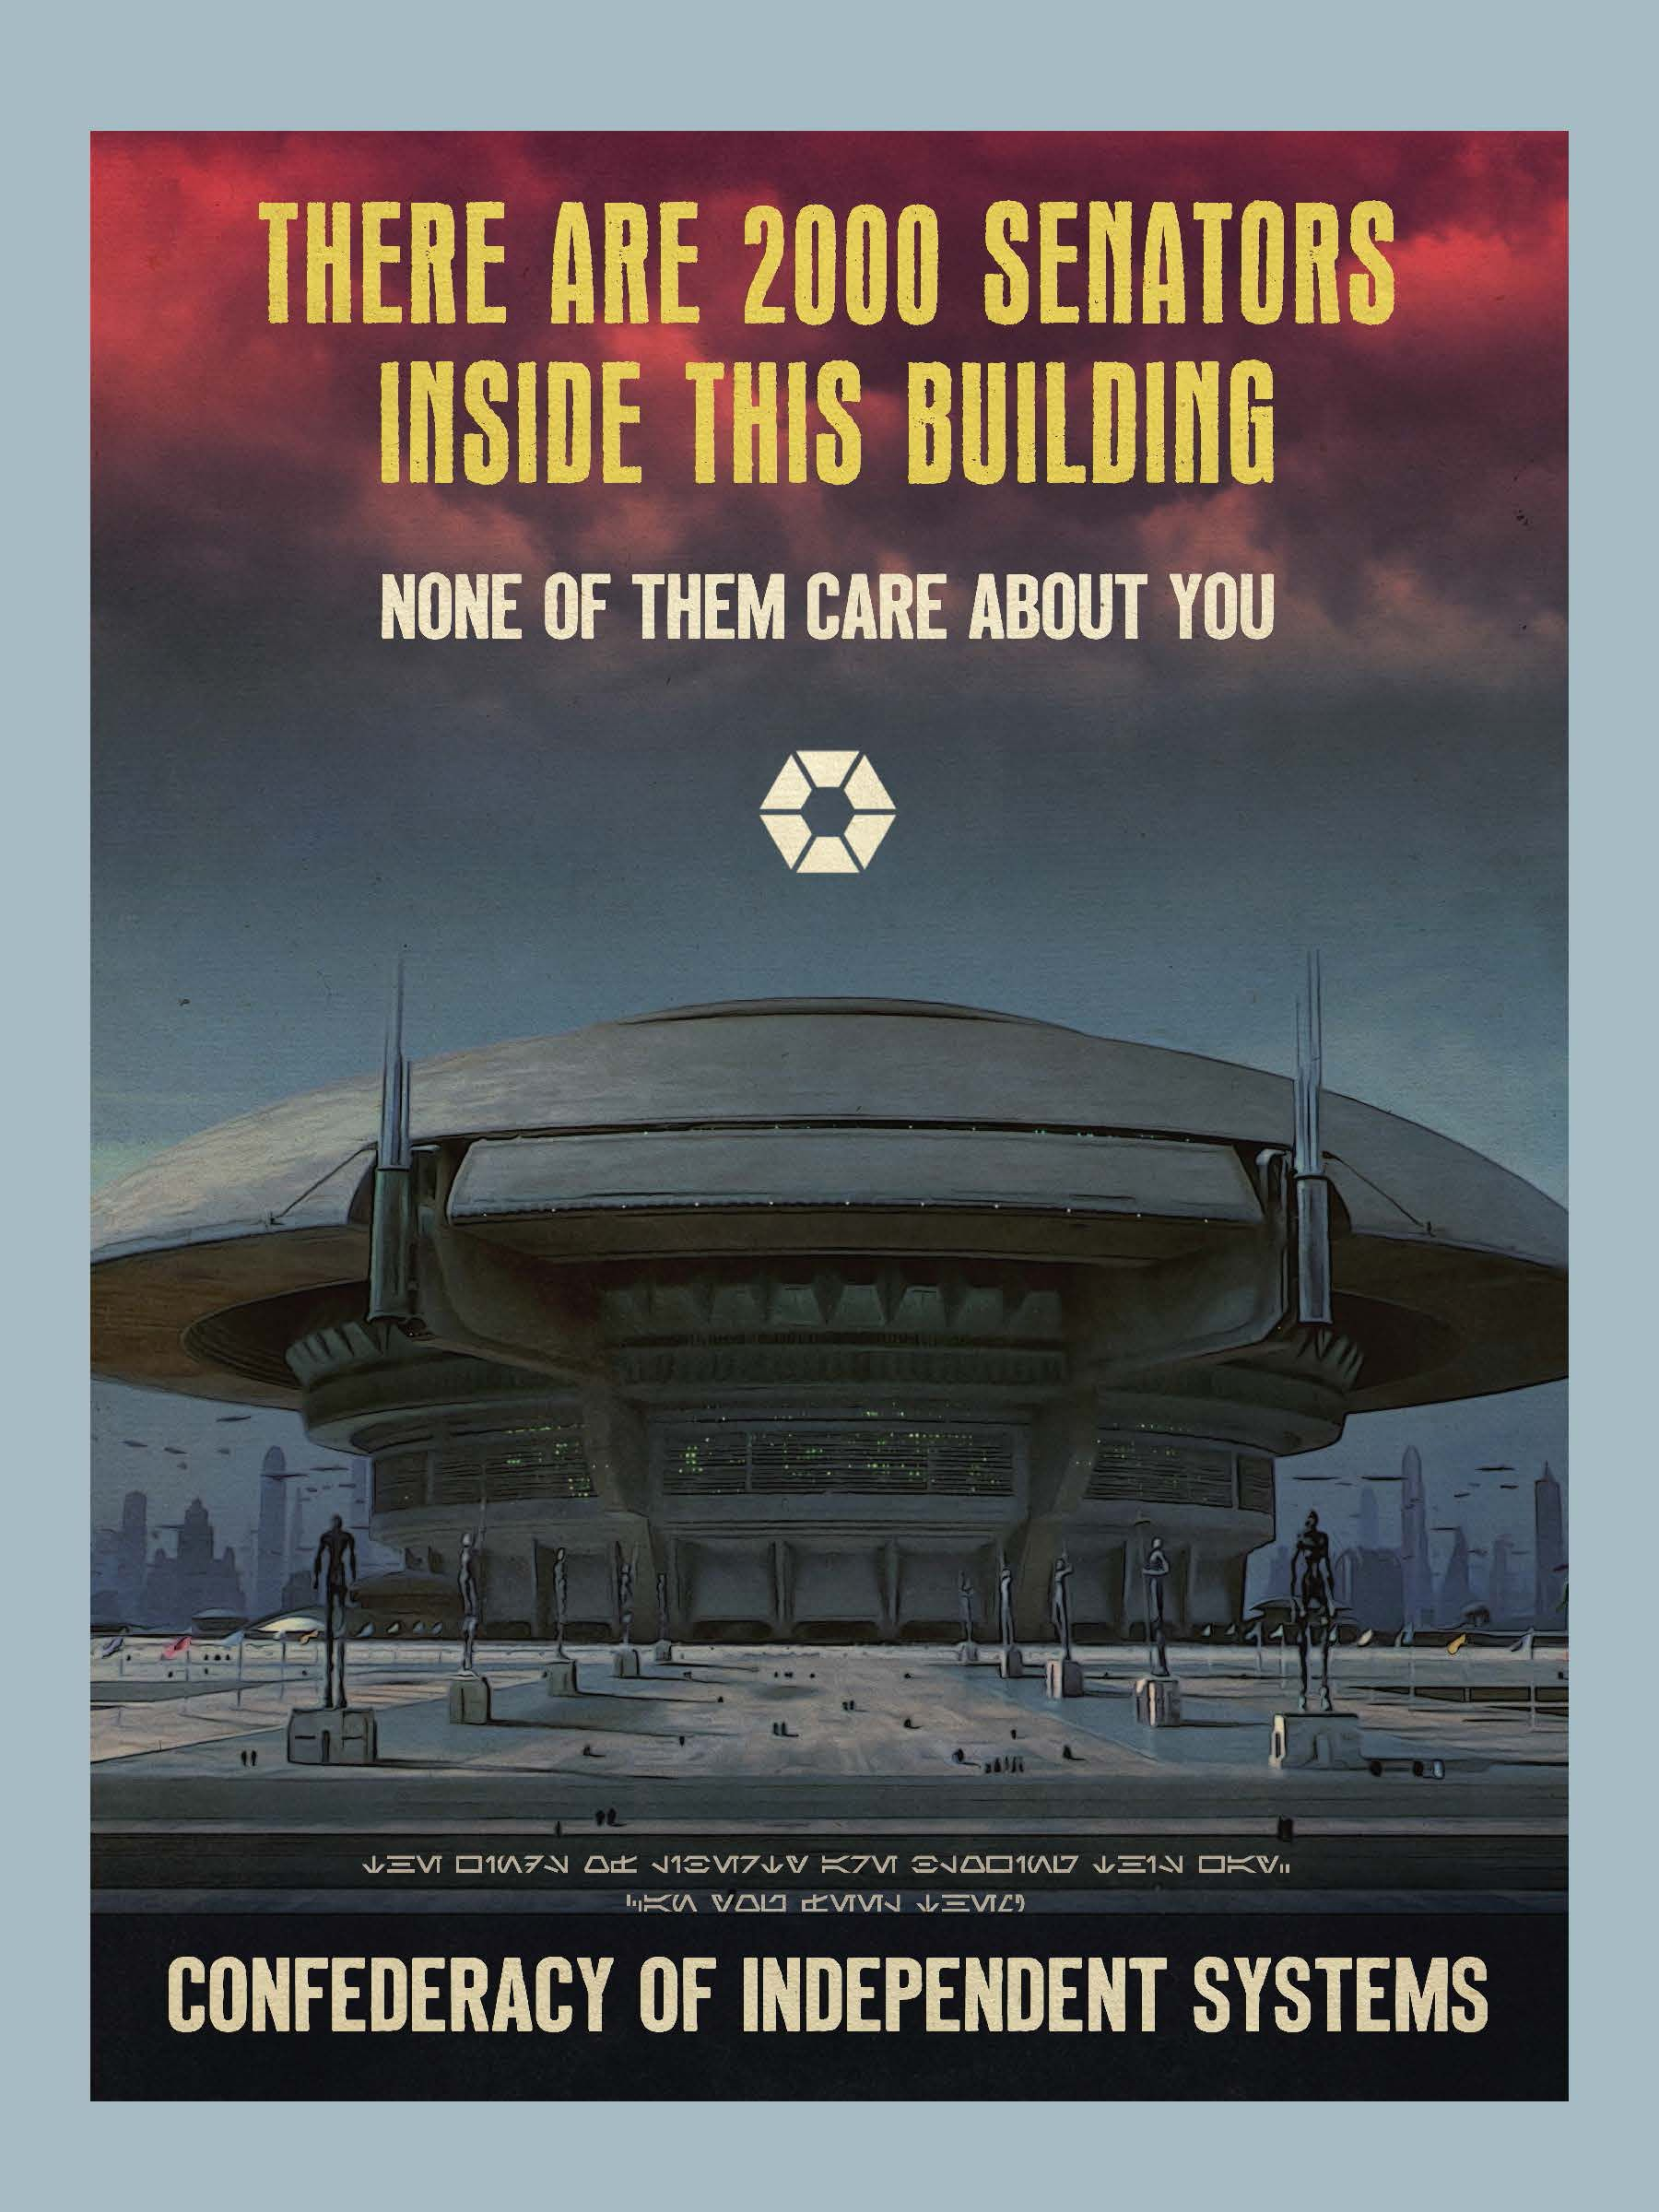 Star Wars Propaganda Posters Just Might Convince You To Join The Empire Exclusive Star Wars Wallpaper Star Wars Propaganda Posters